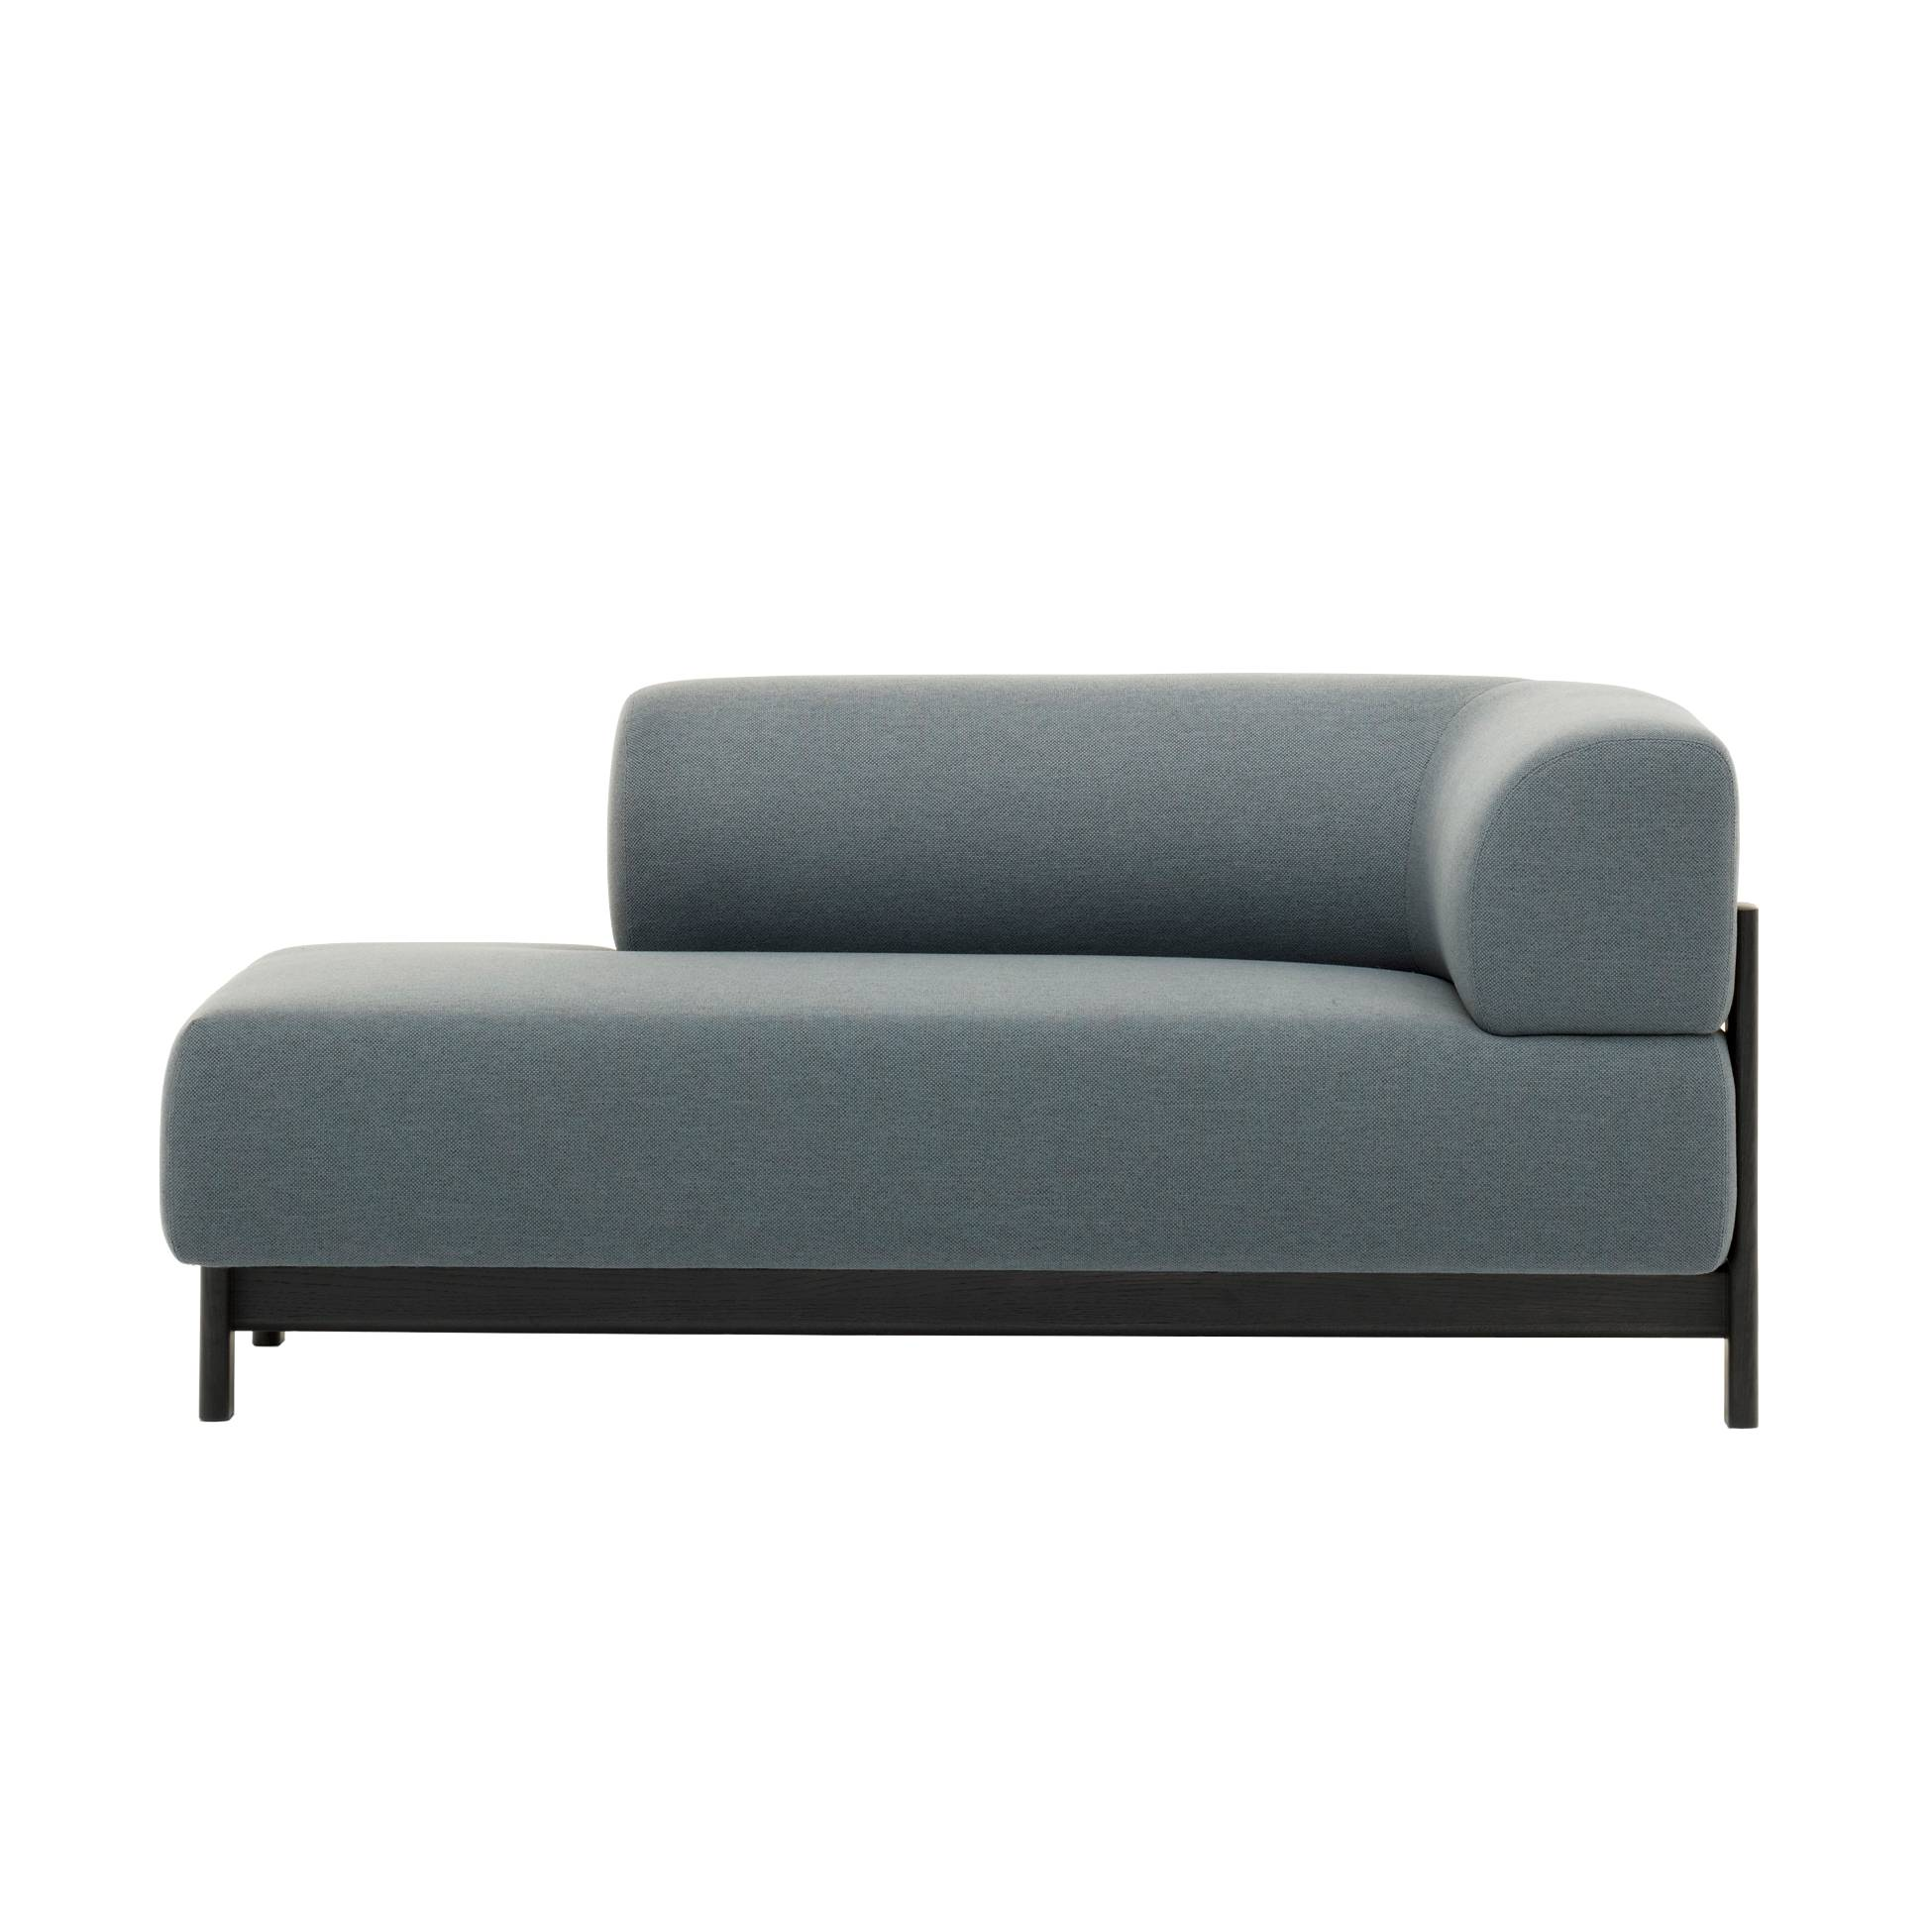 Elephant Chaise Lounge: Right Corner + Black Frame